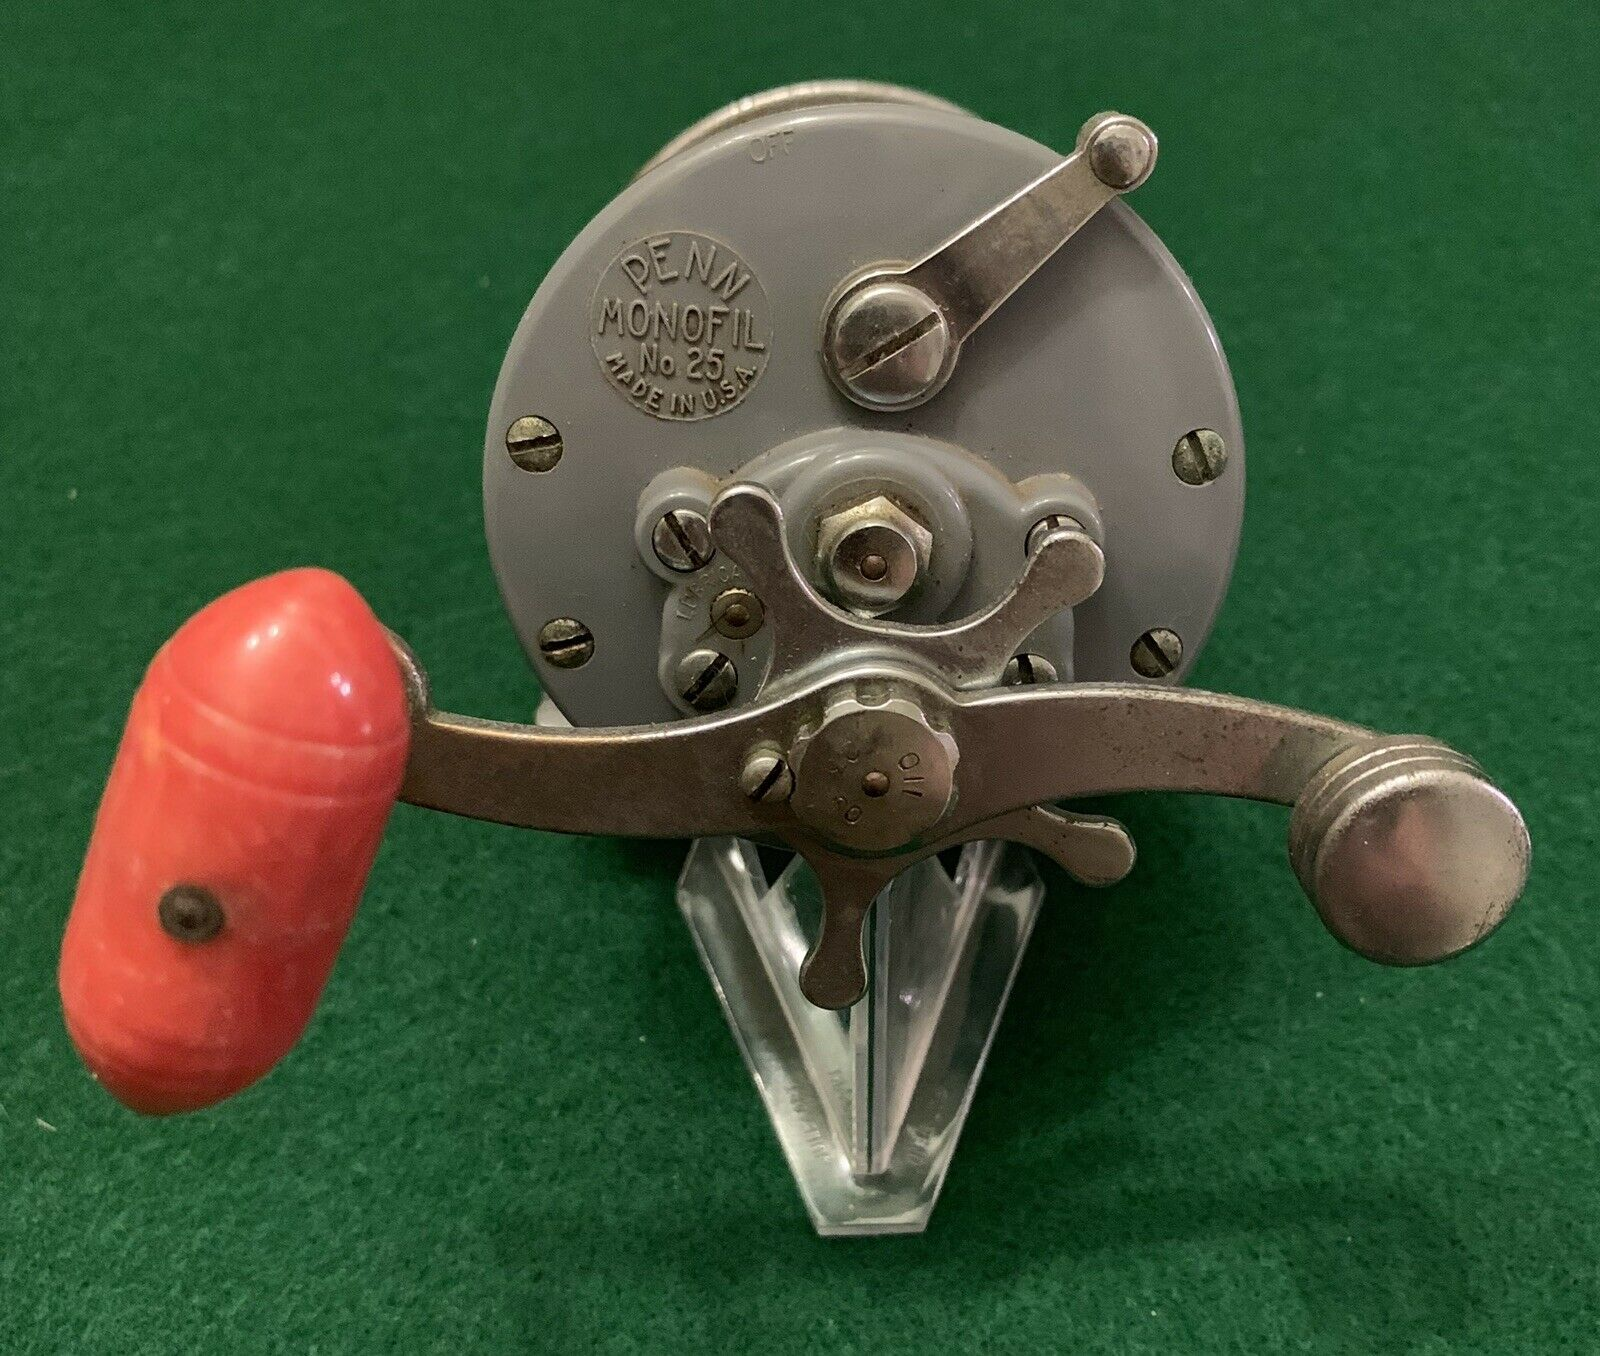 Penn Monofil 25  Conventional Fishing Reel Made In USA Great Collectible Or User  best-selling